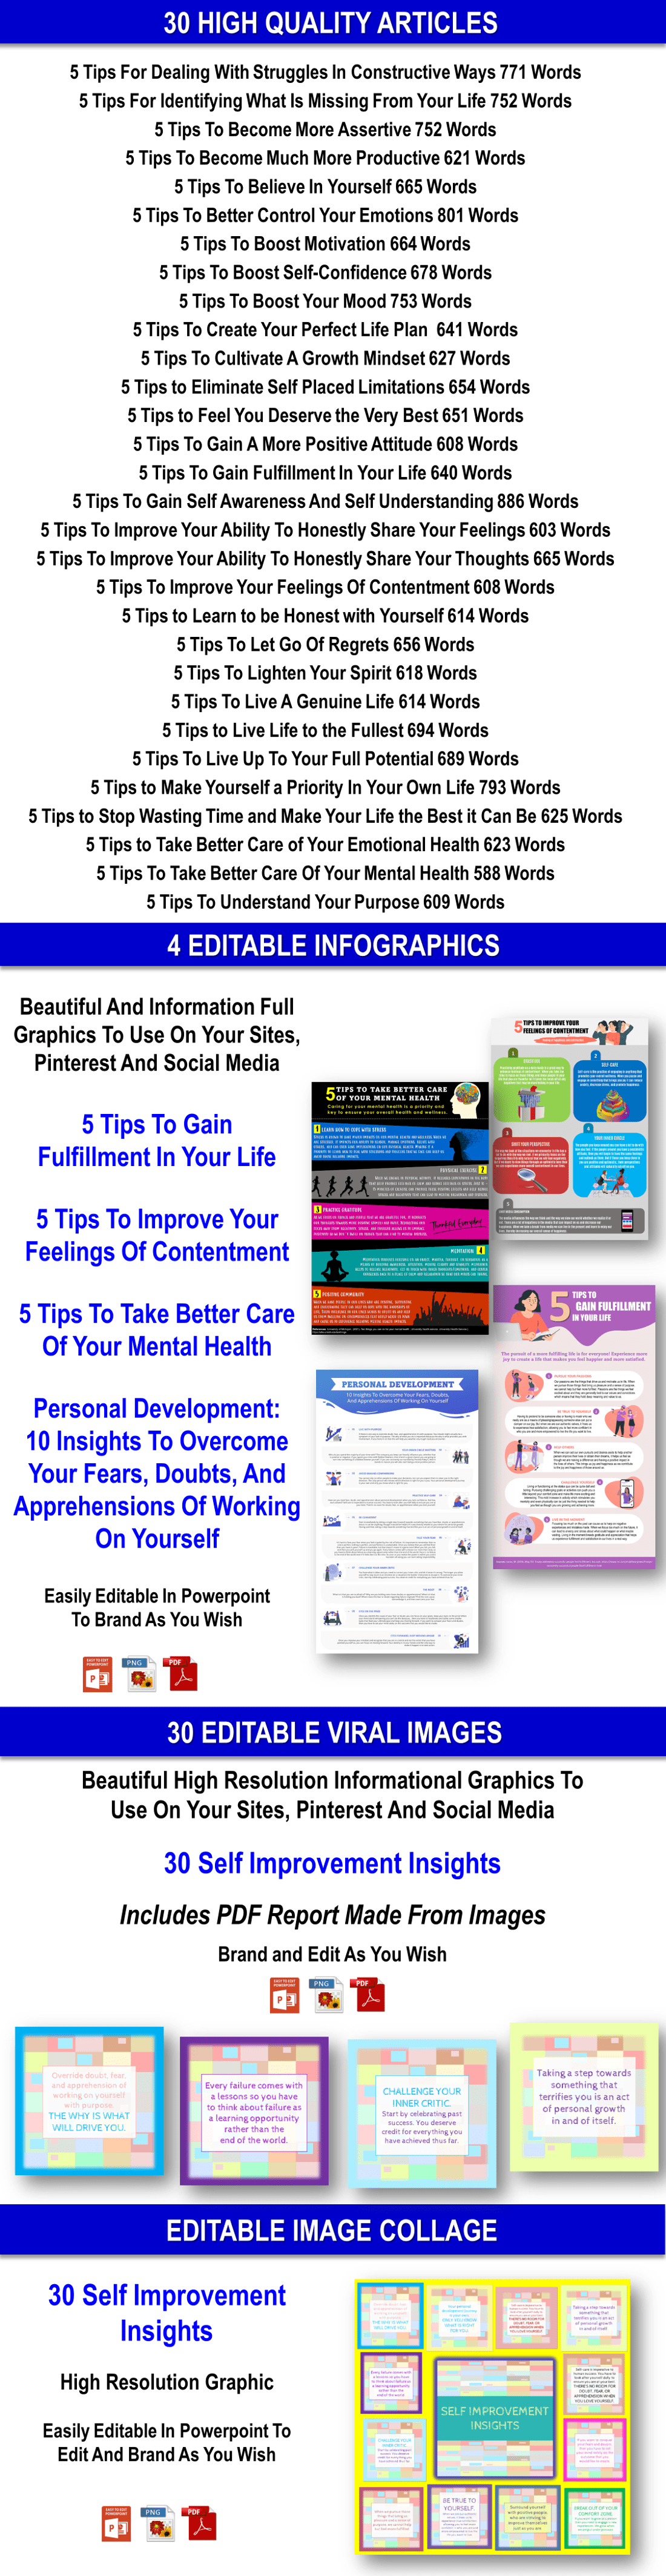 100 Personal Development Goals And Ideas Content Pack With PLR Rights